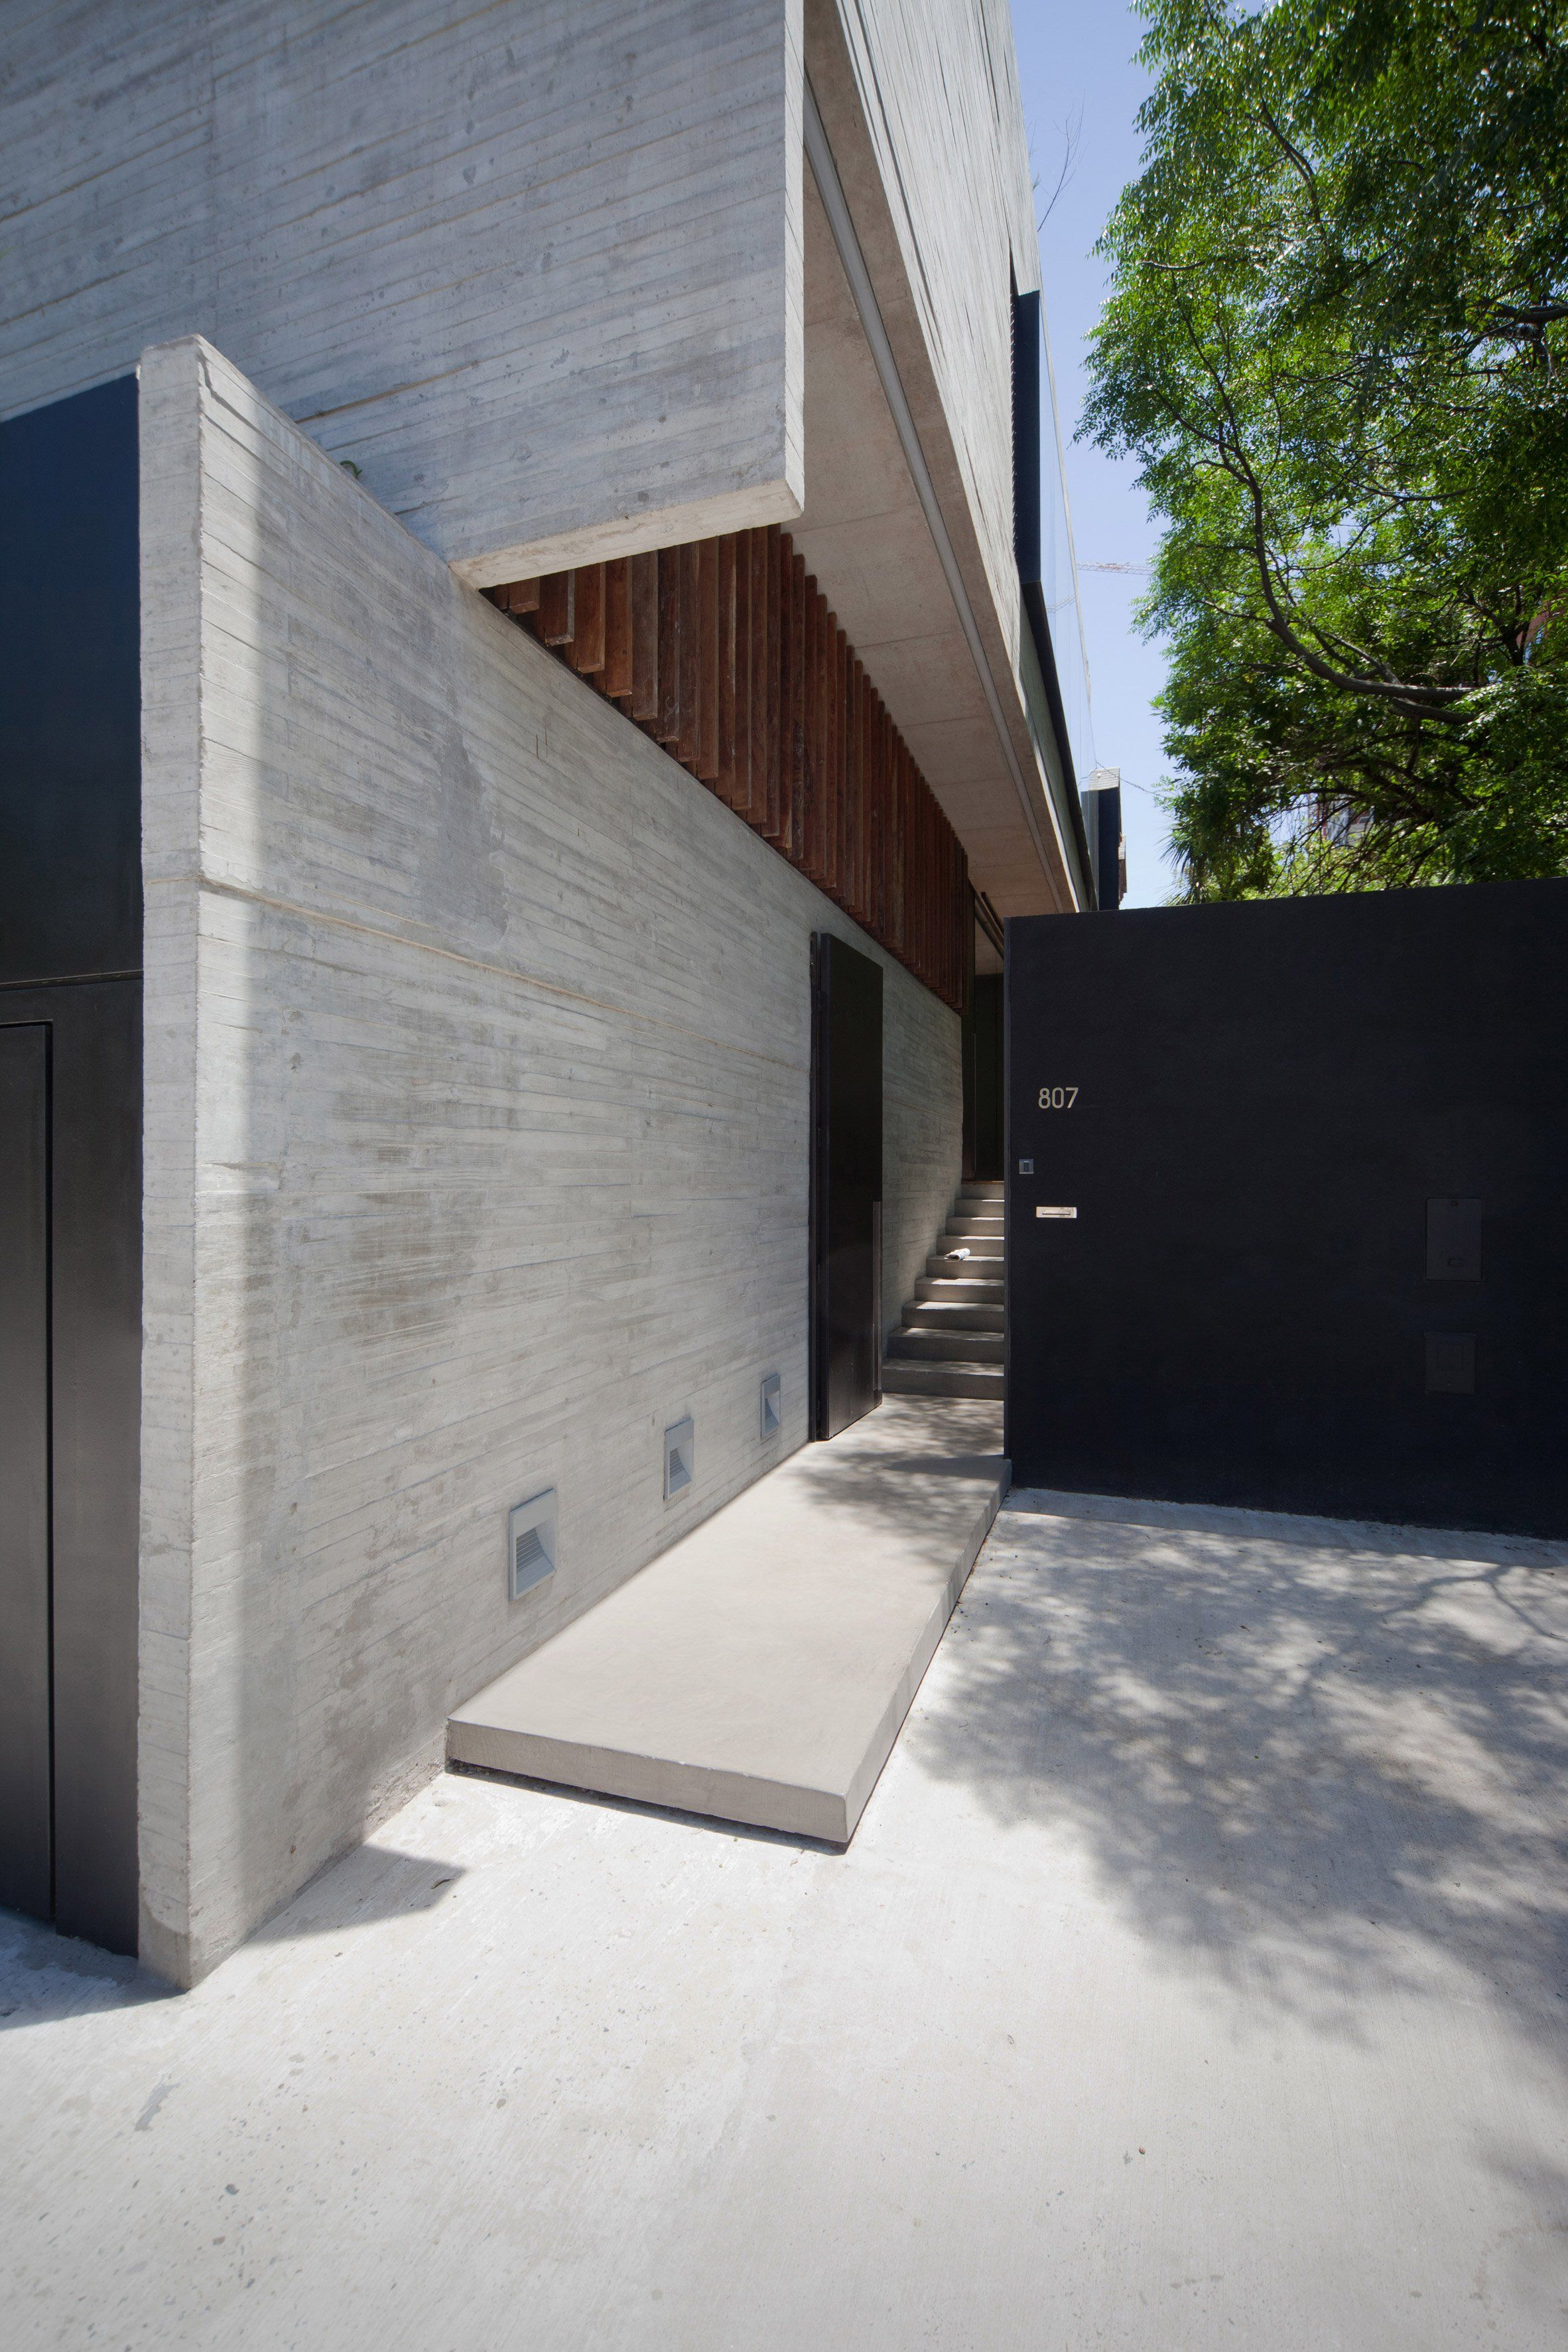 Rectangular Concrete Slabs Form The Exterior And Interior Walls Concrete Corner House In Buenos Minimalist Architecture Residential Architecture Architecture